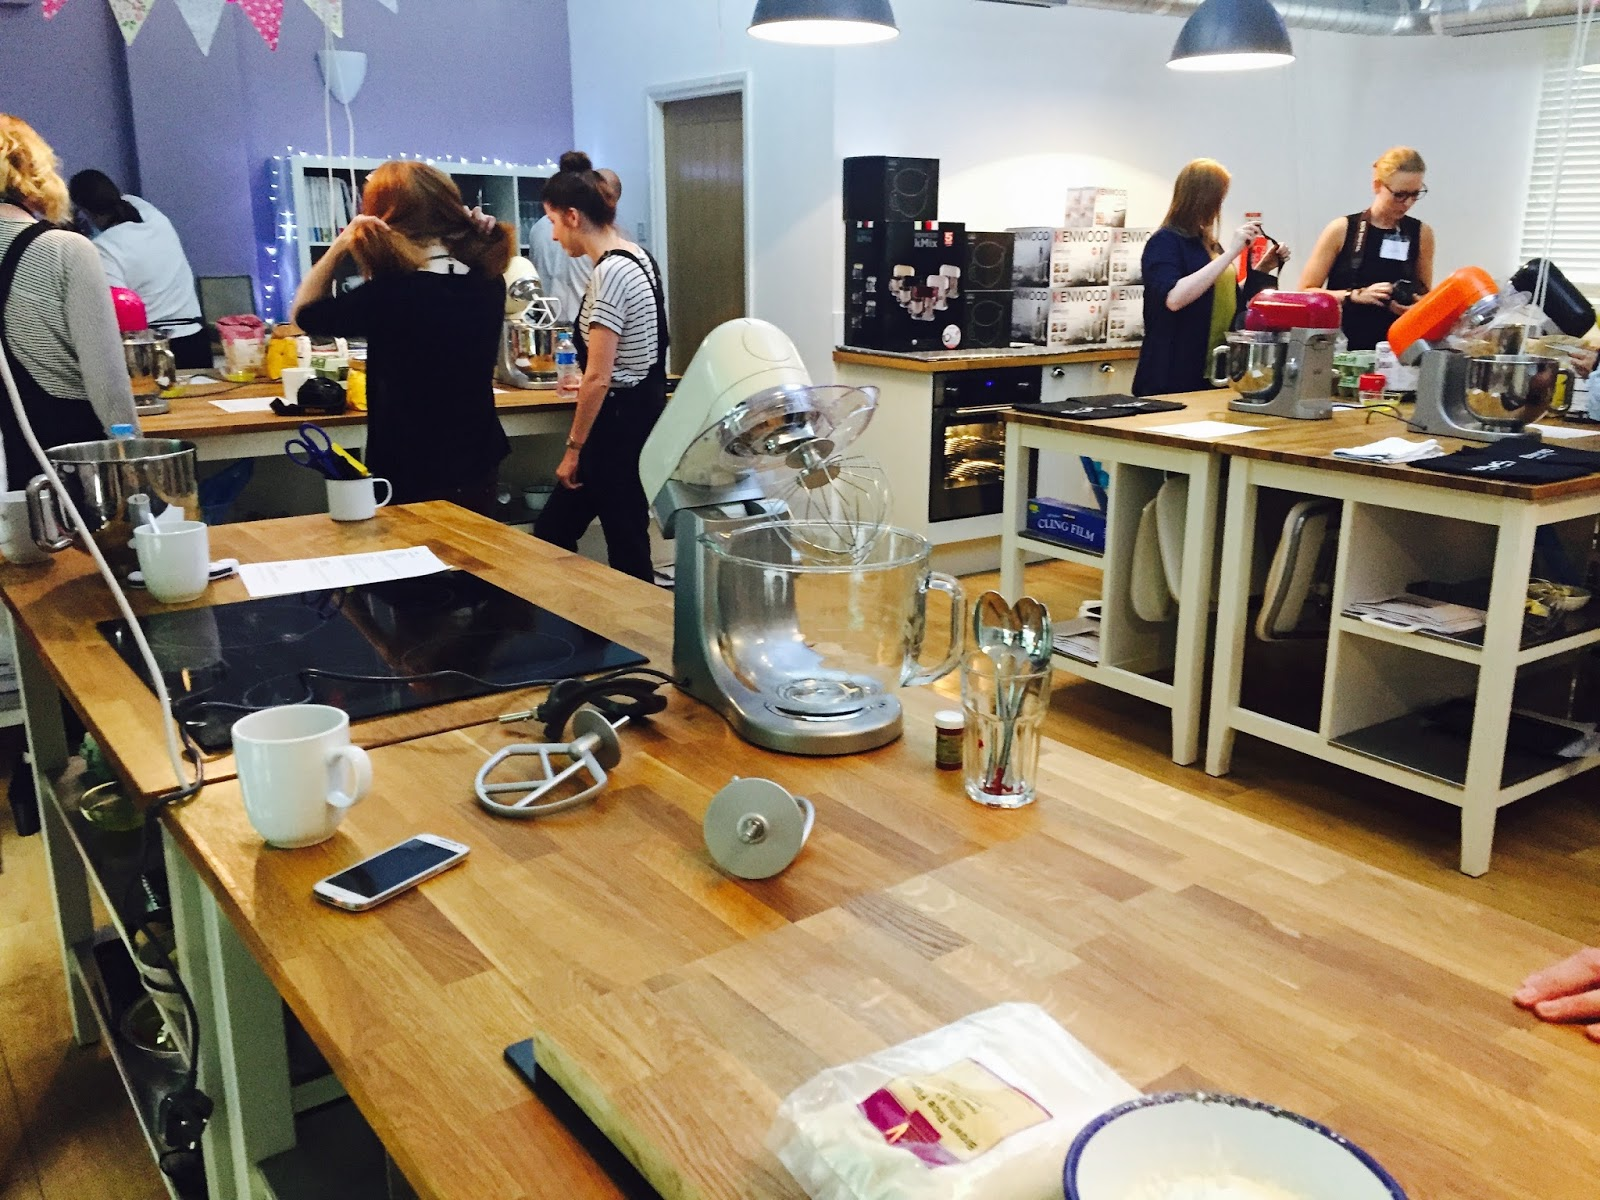 Manchester cookery school